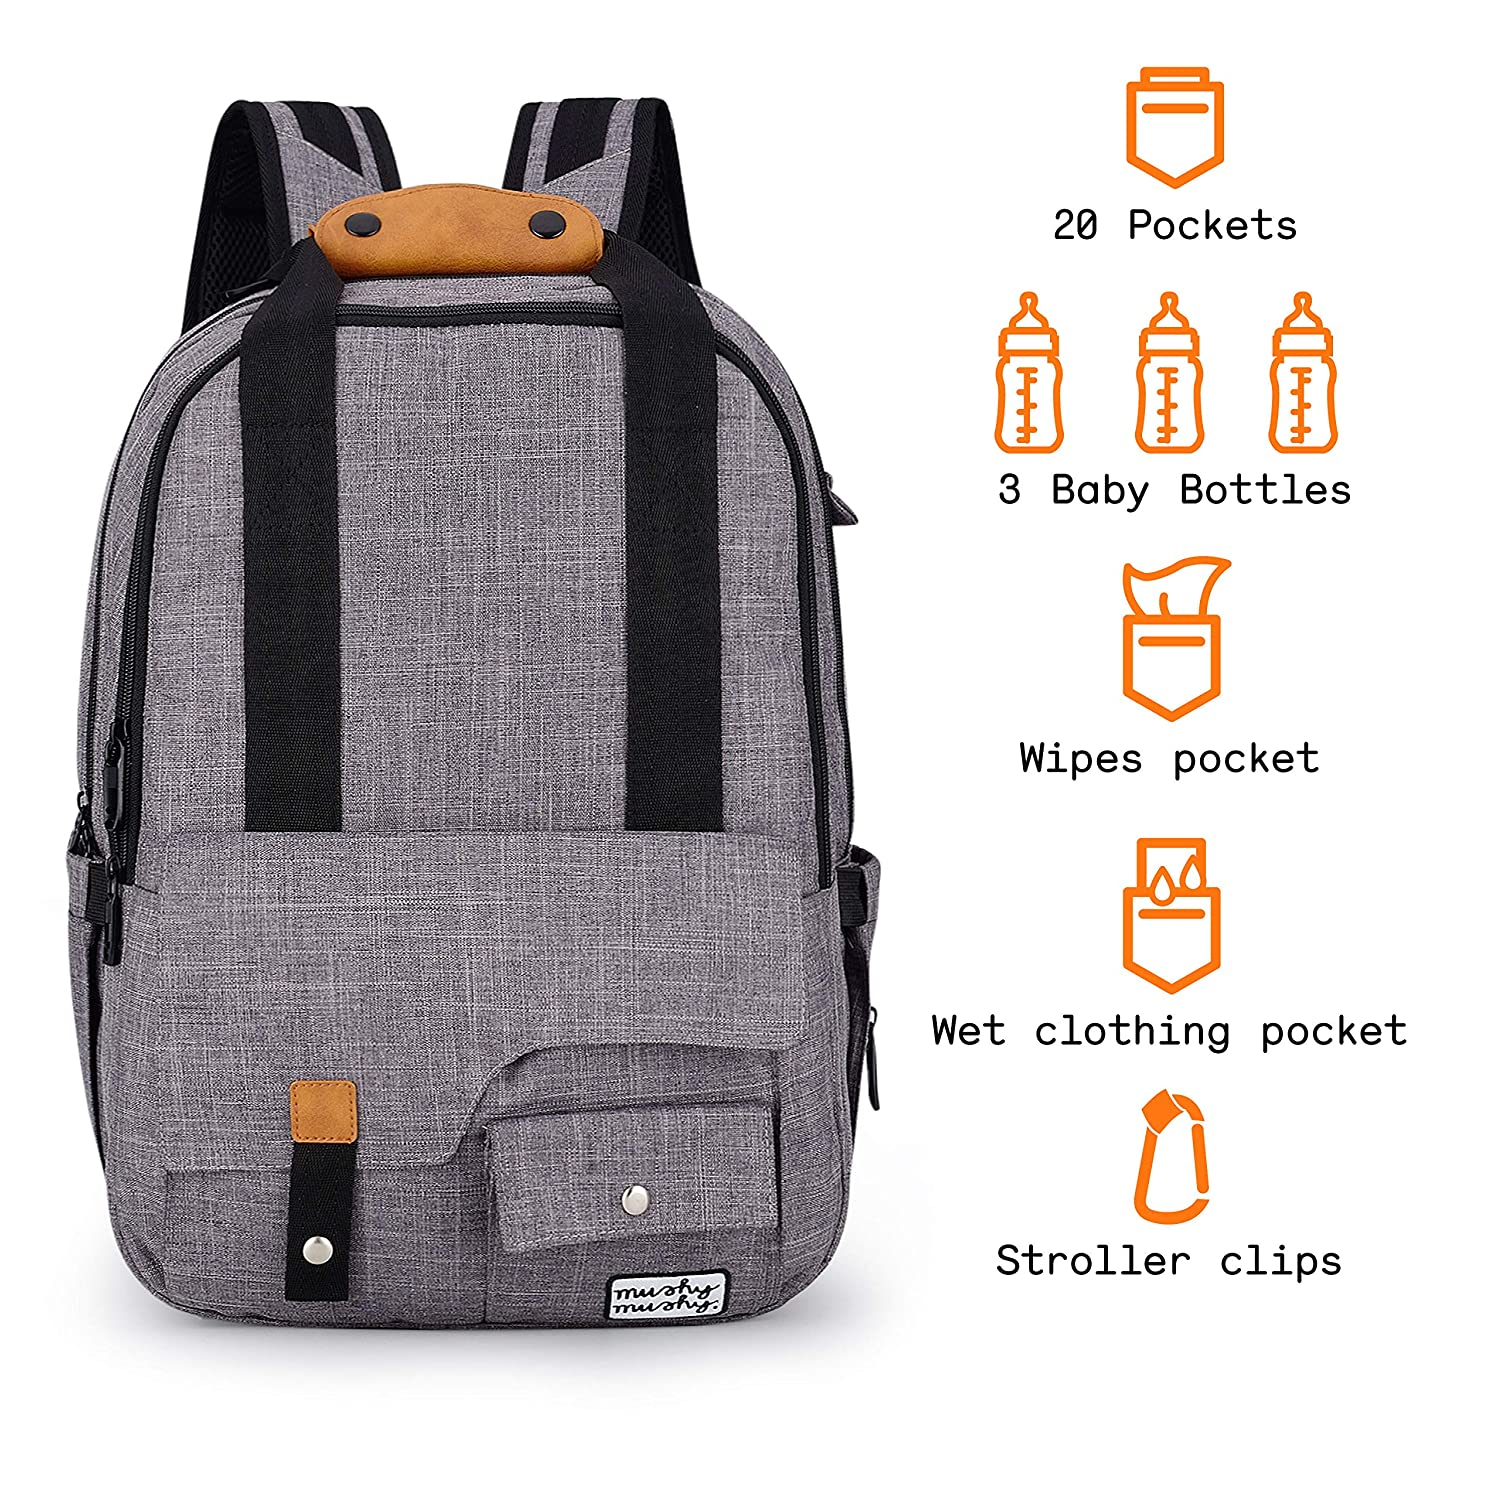 0de751fa51d2 Baby Changing Bag Backpack by Mushy Mushy - The Stylish Baby Bag for ...